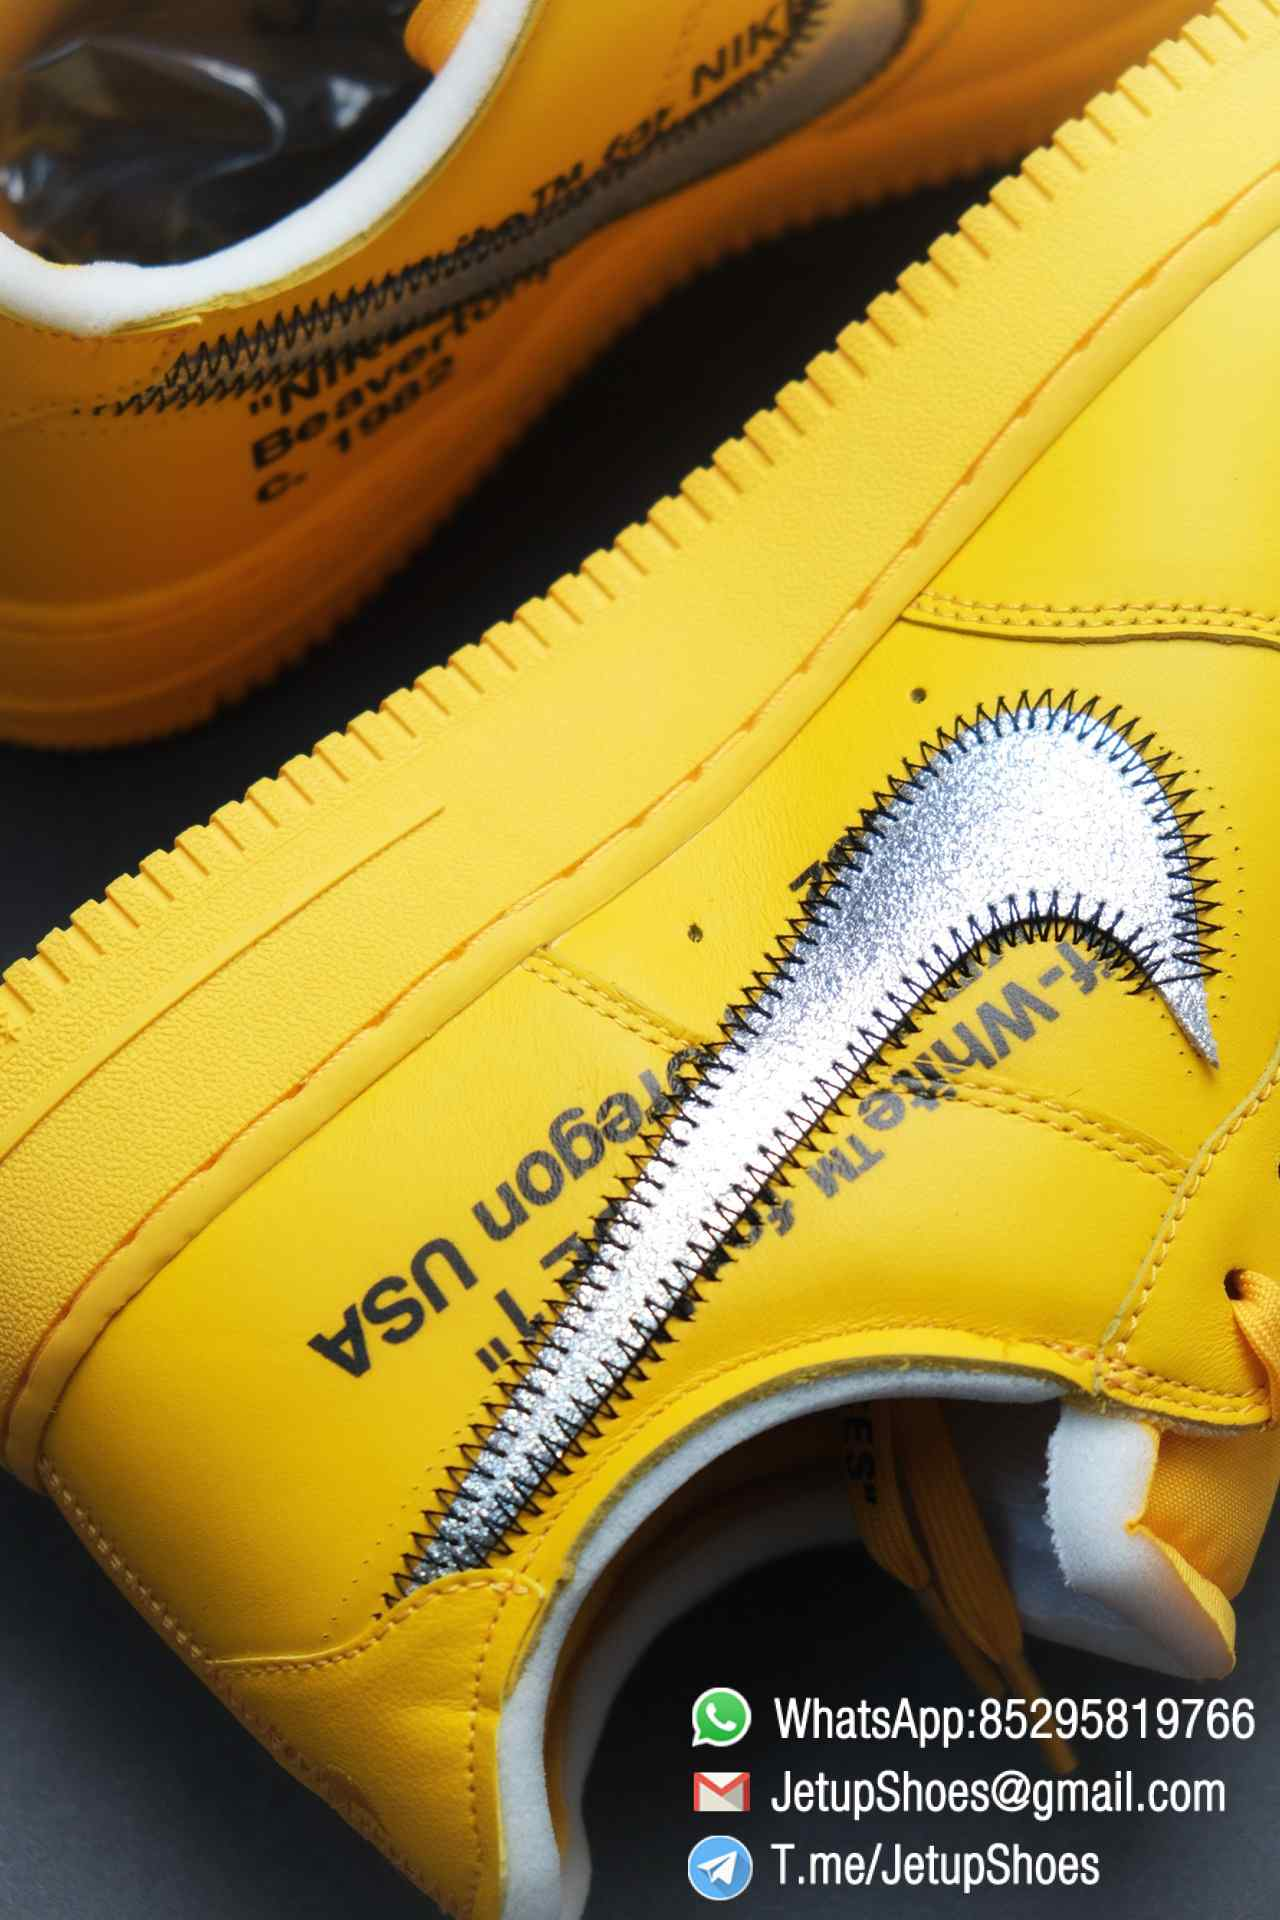 Best Replica Sneakers Off White x Air Force 1 Low University Gold SKU DD1876 700 Top Quality Basketball Shoes 015